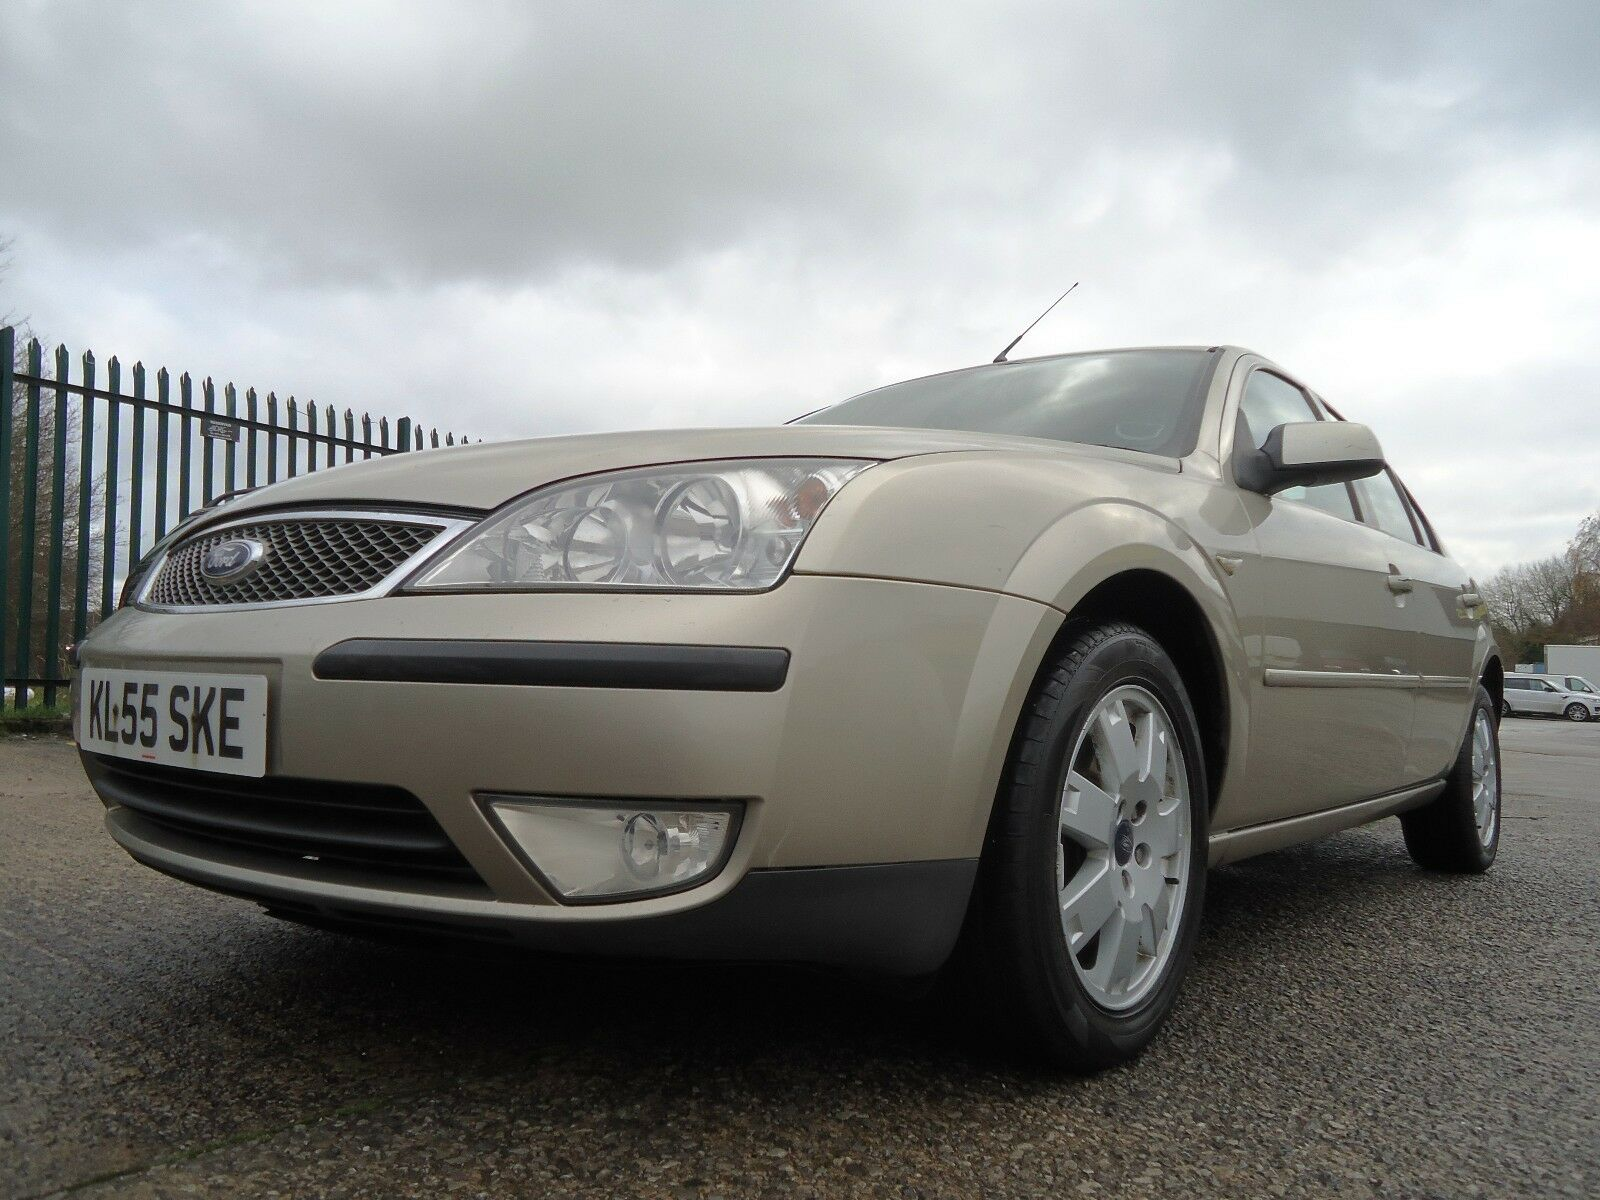 2005 ford mondeo 2 0 tdci zetec diesel hatchback 5 door picclick uk. Black Bedroom Furniture Sets. Home Design Ideas